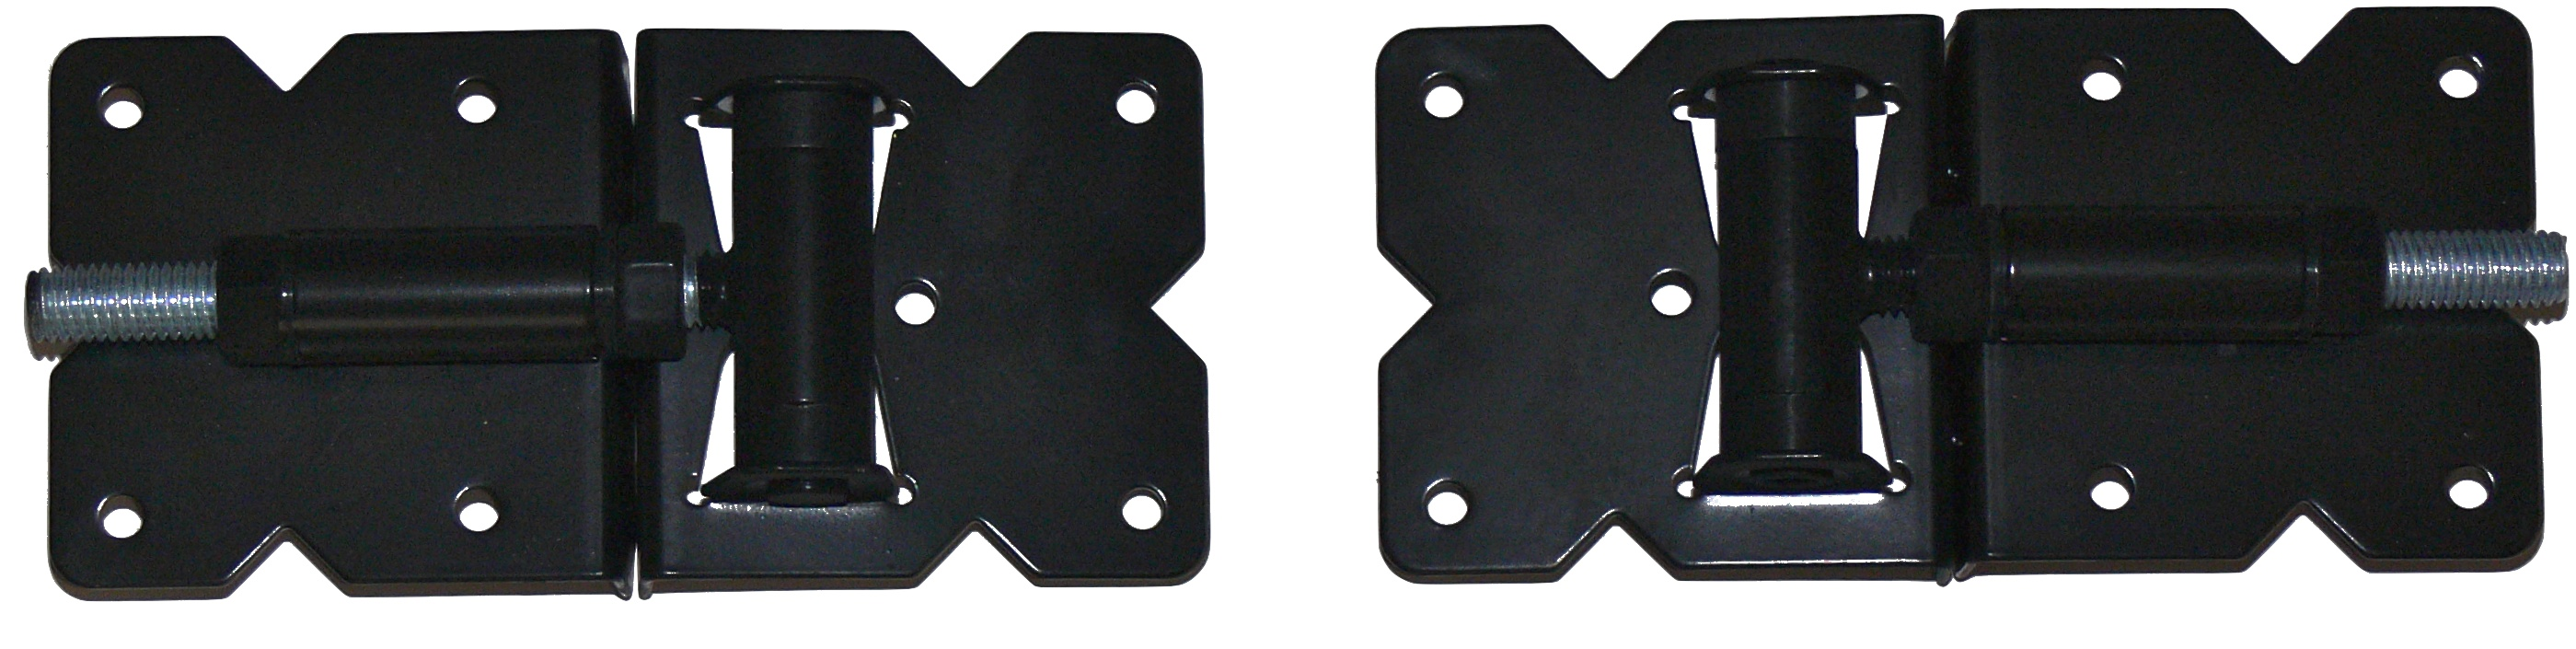 Vinyl Gate Hinges Black For Vinyl Pvc Etc Fencing Vinyl